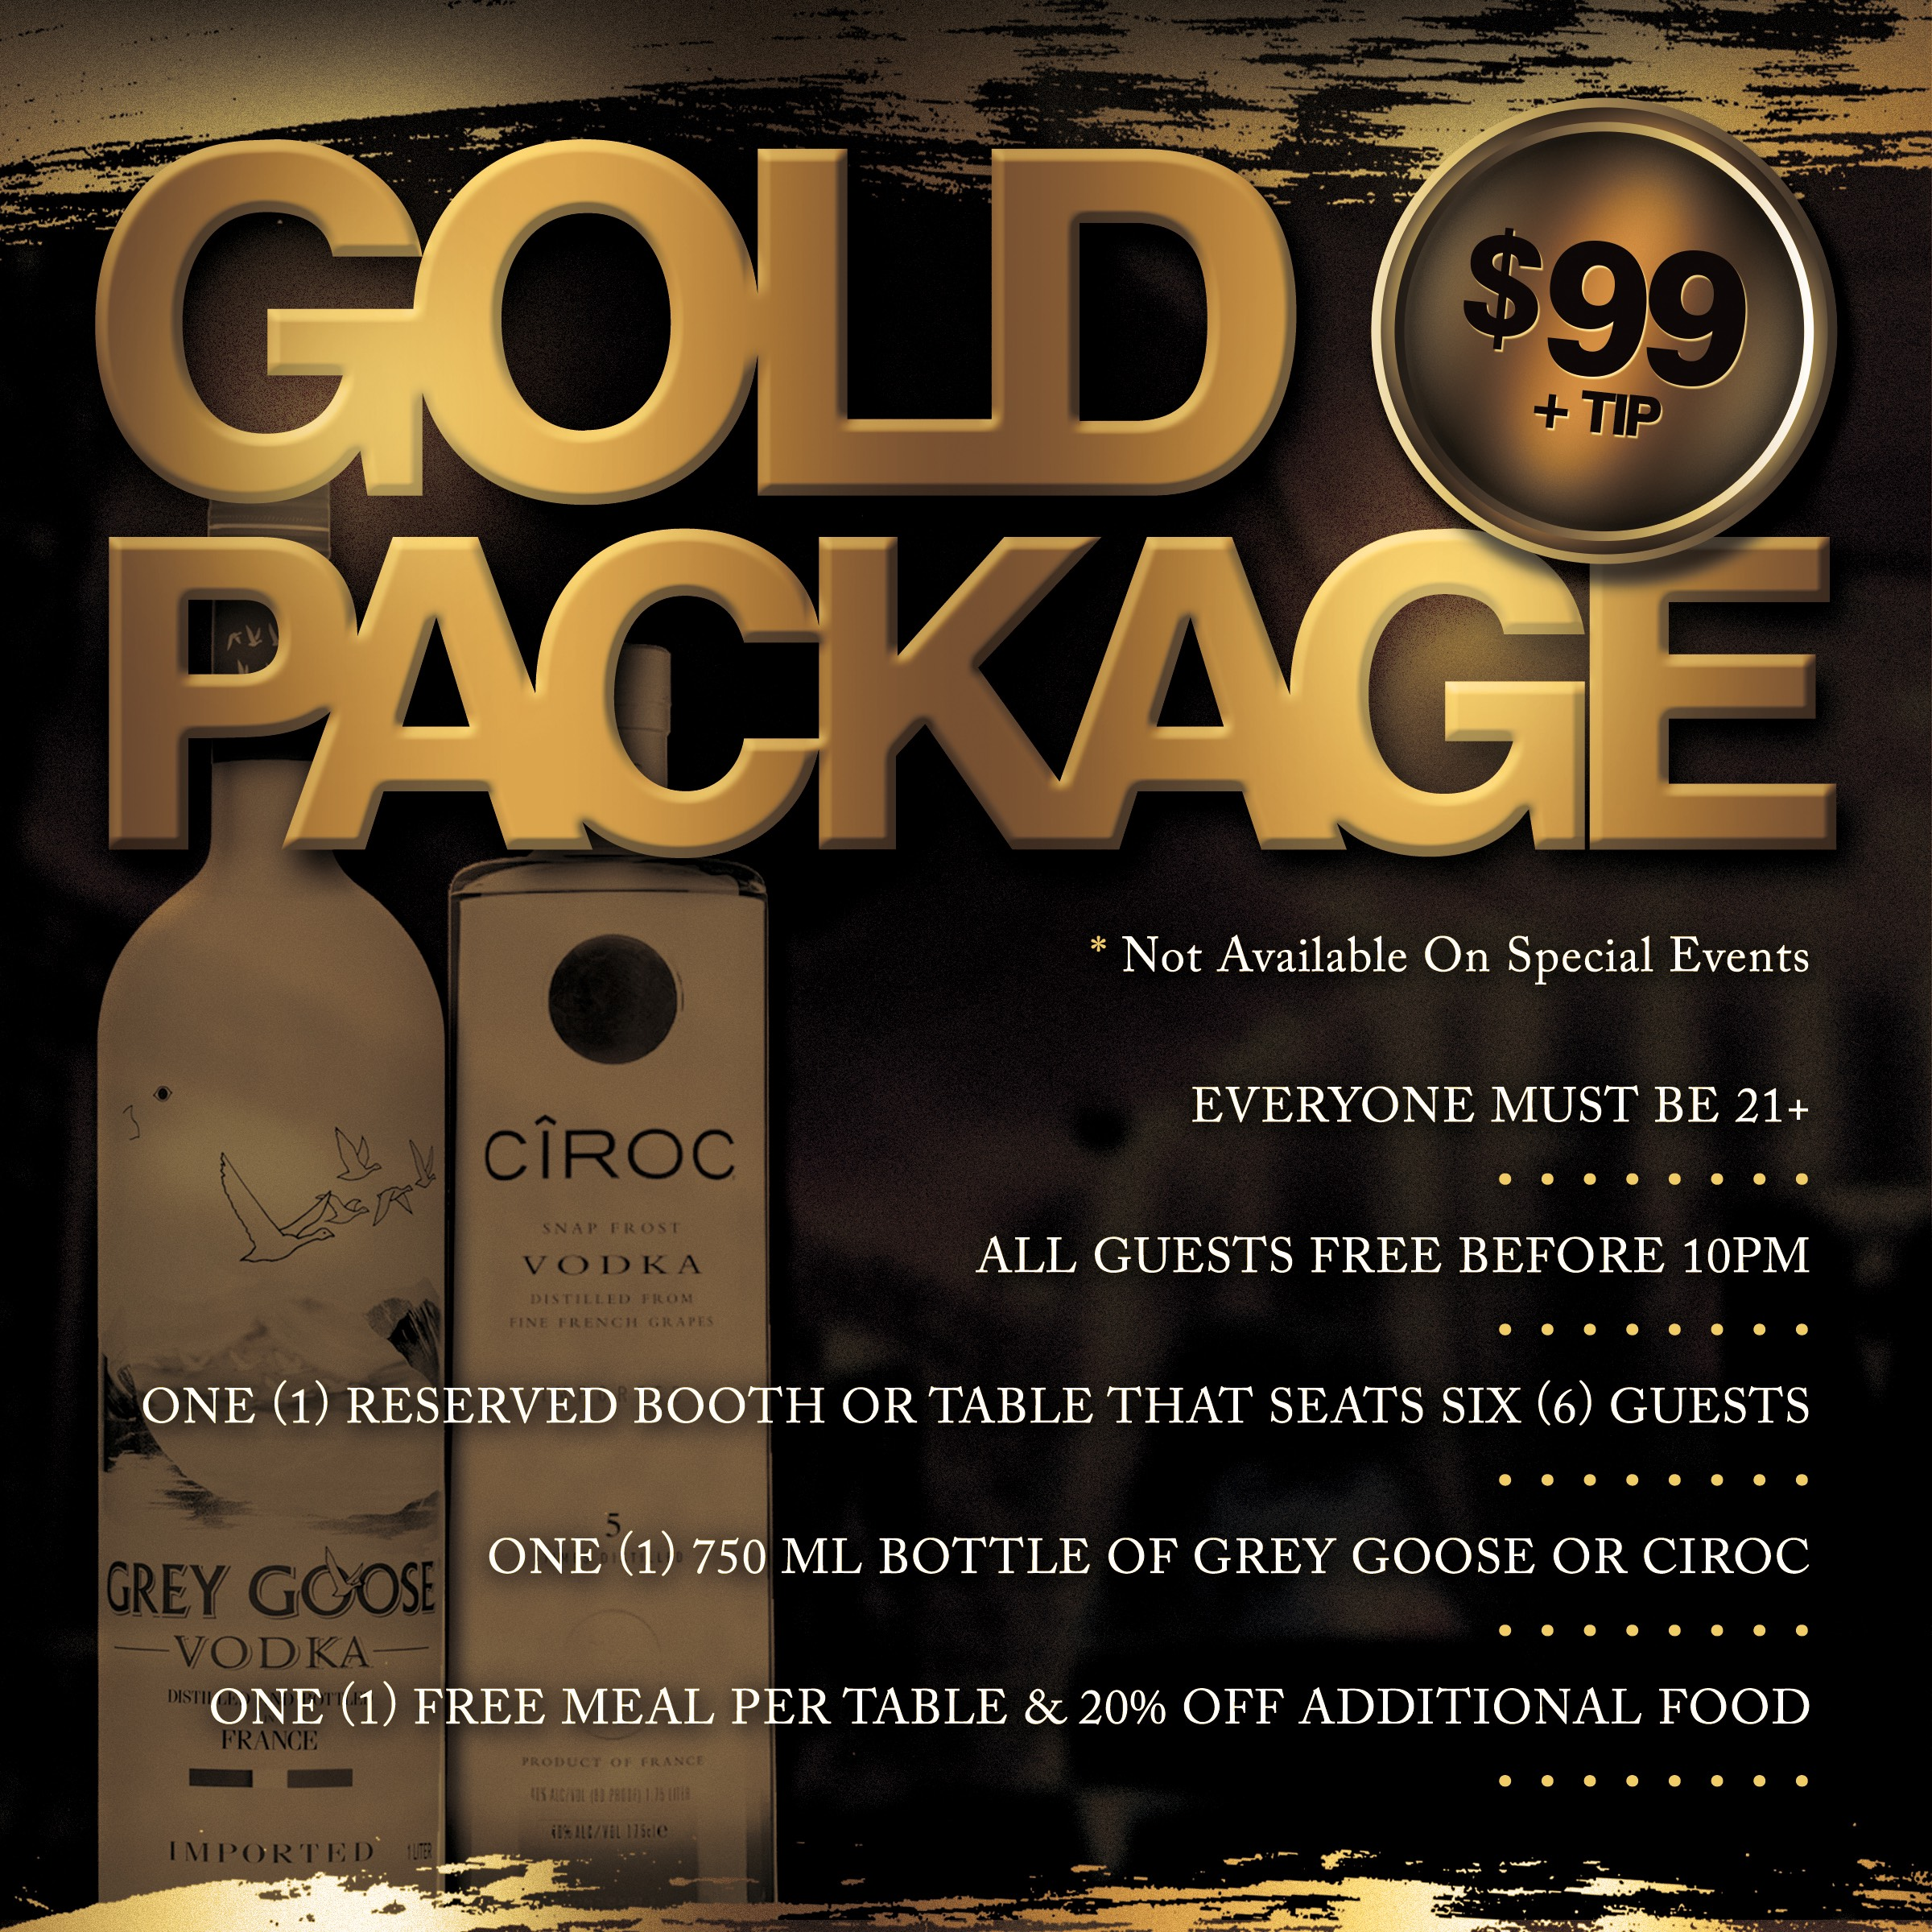 340 GOLD Package - August 2017-squashed.jpg